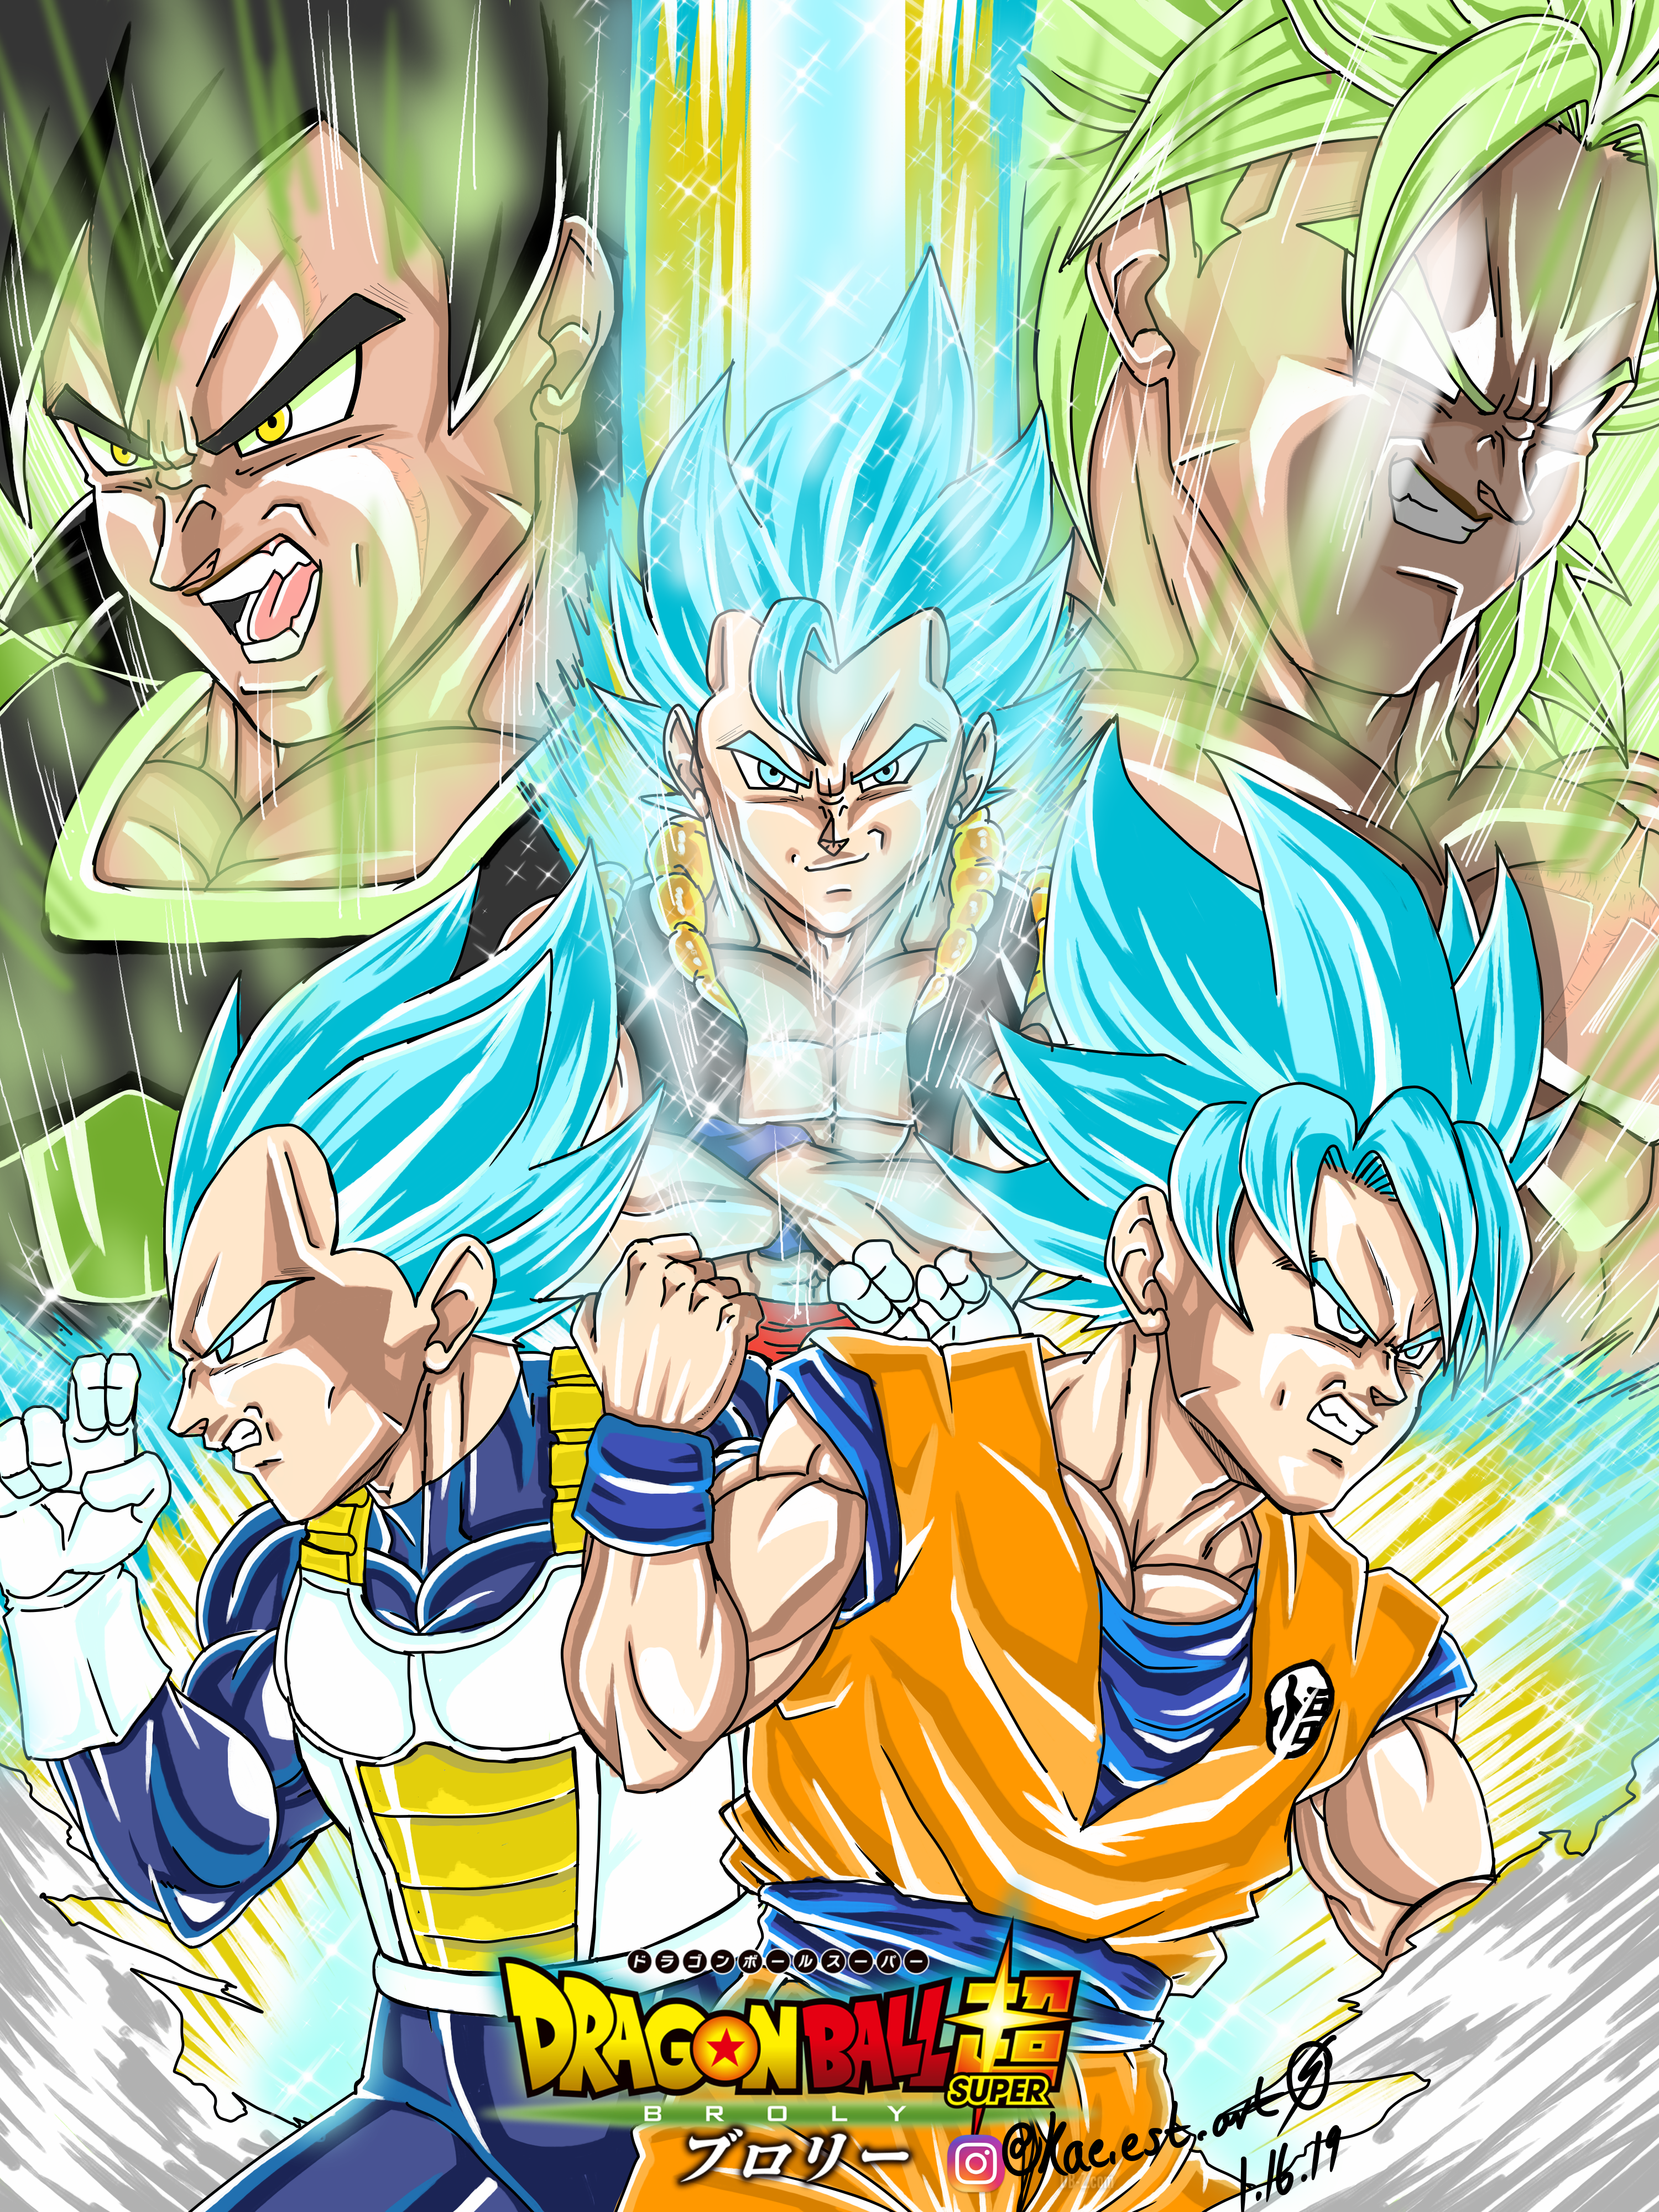 Dragonball Super Broly By Elikyoshi On Newgrounds